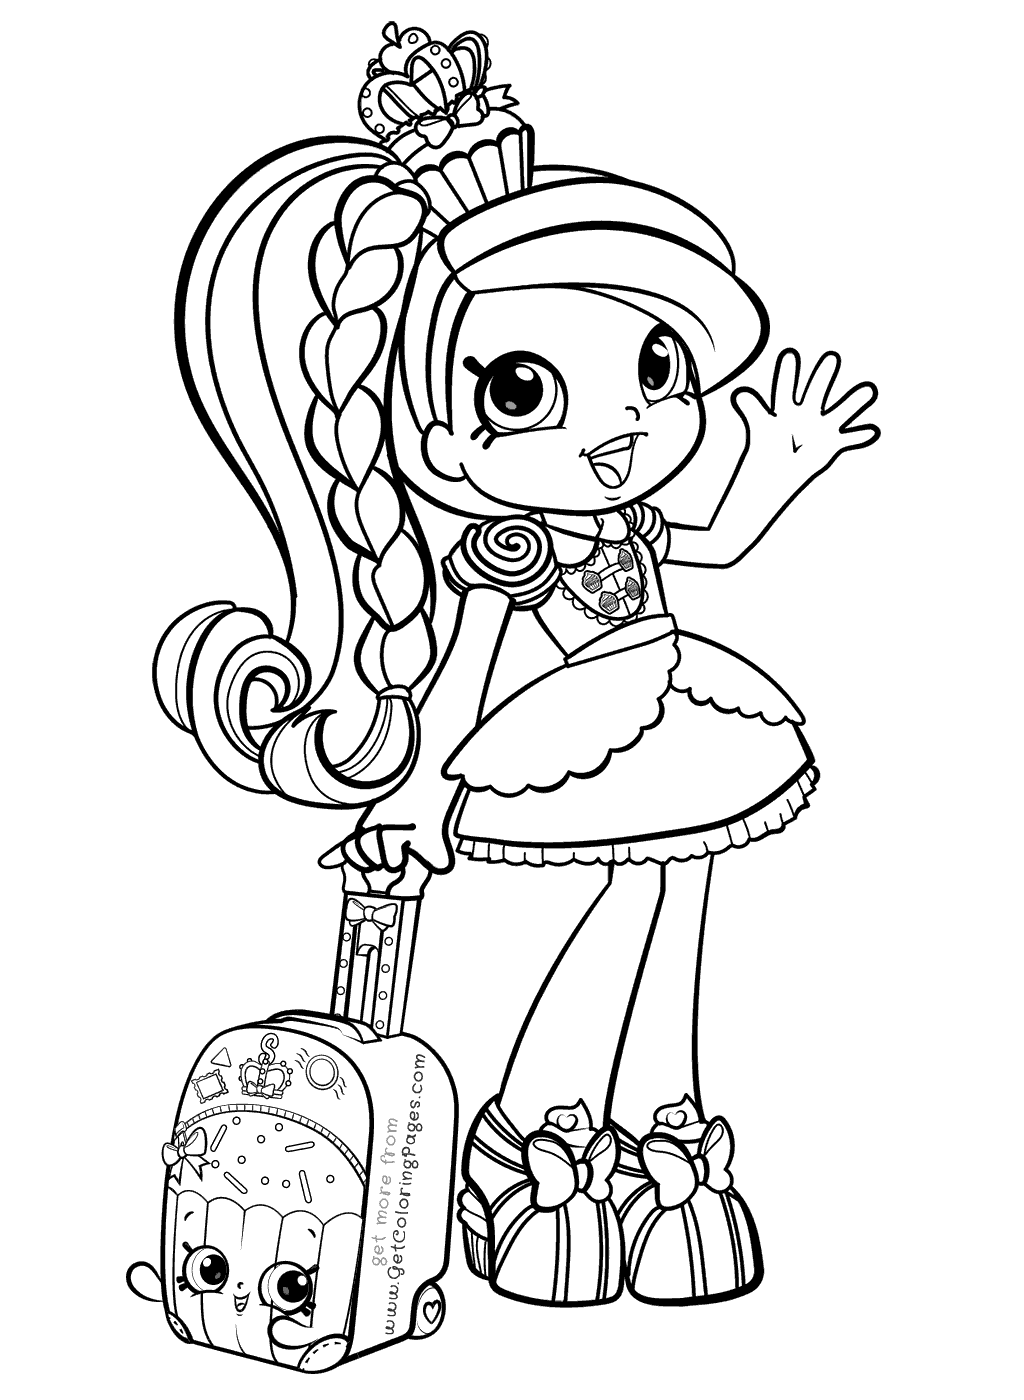 Drawing shopkins color. Shoppies coloring pages pinterest